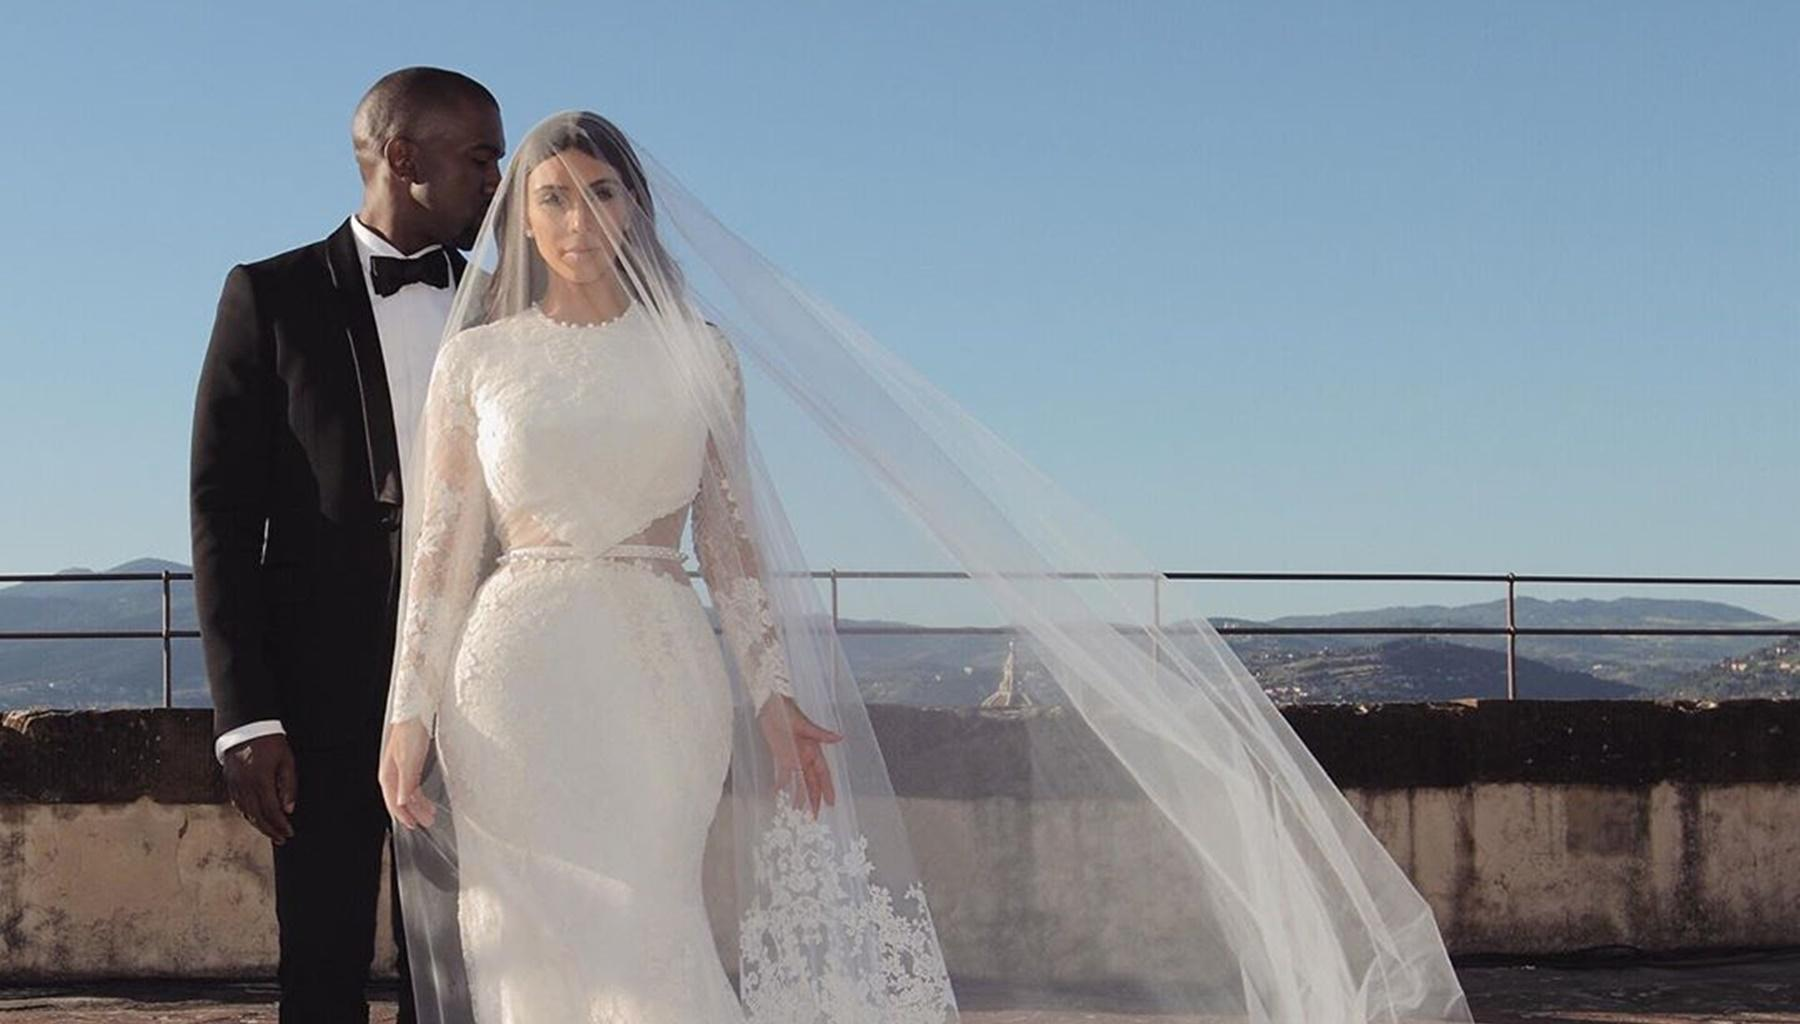 Kim Kardashian And Kanye West Get Criticized For Picking Religious Names For Their Sons And Directions For The Girls -- Is This Valid?